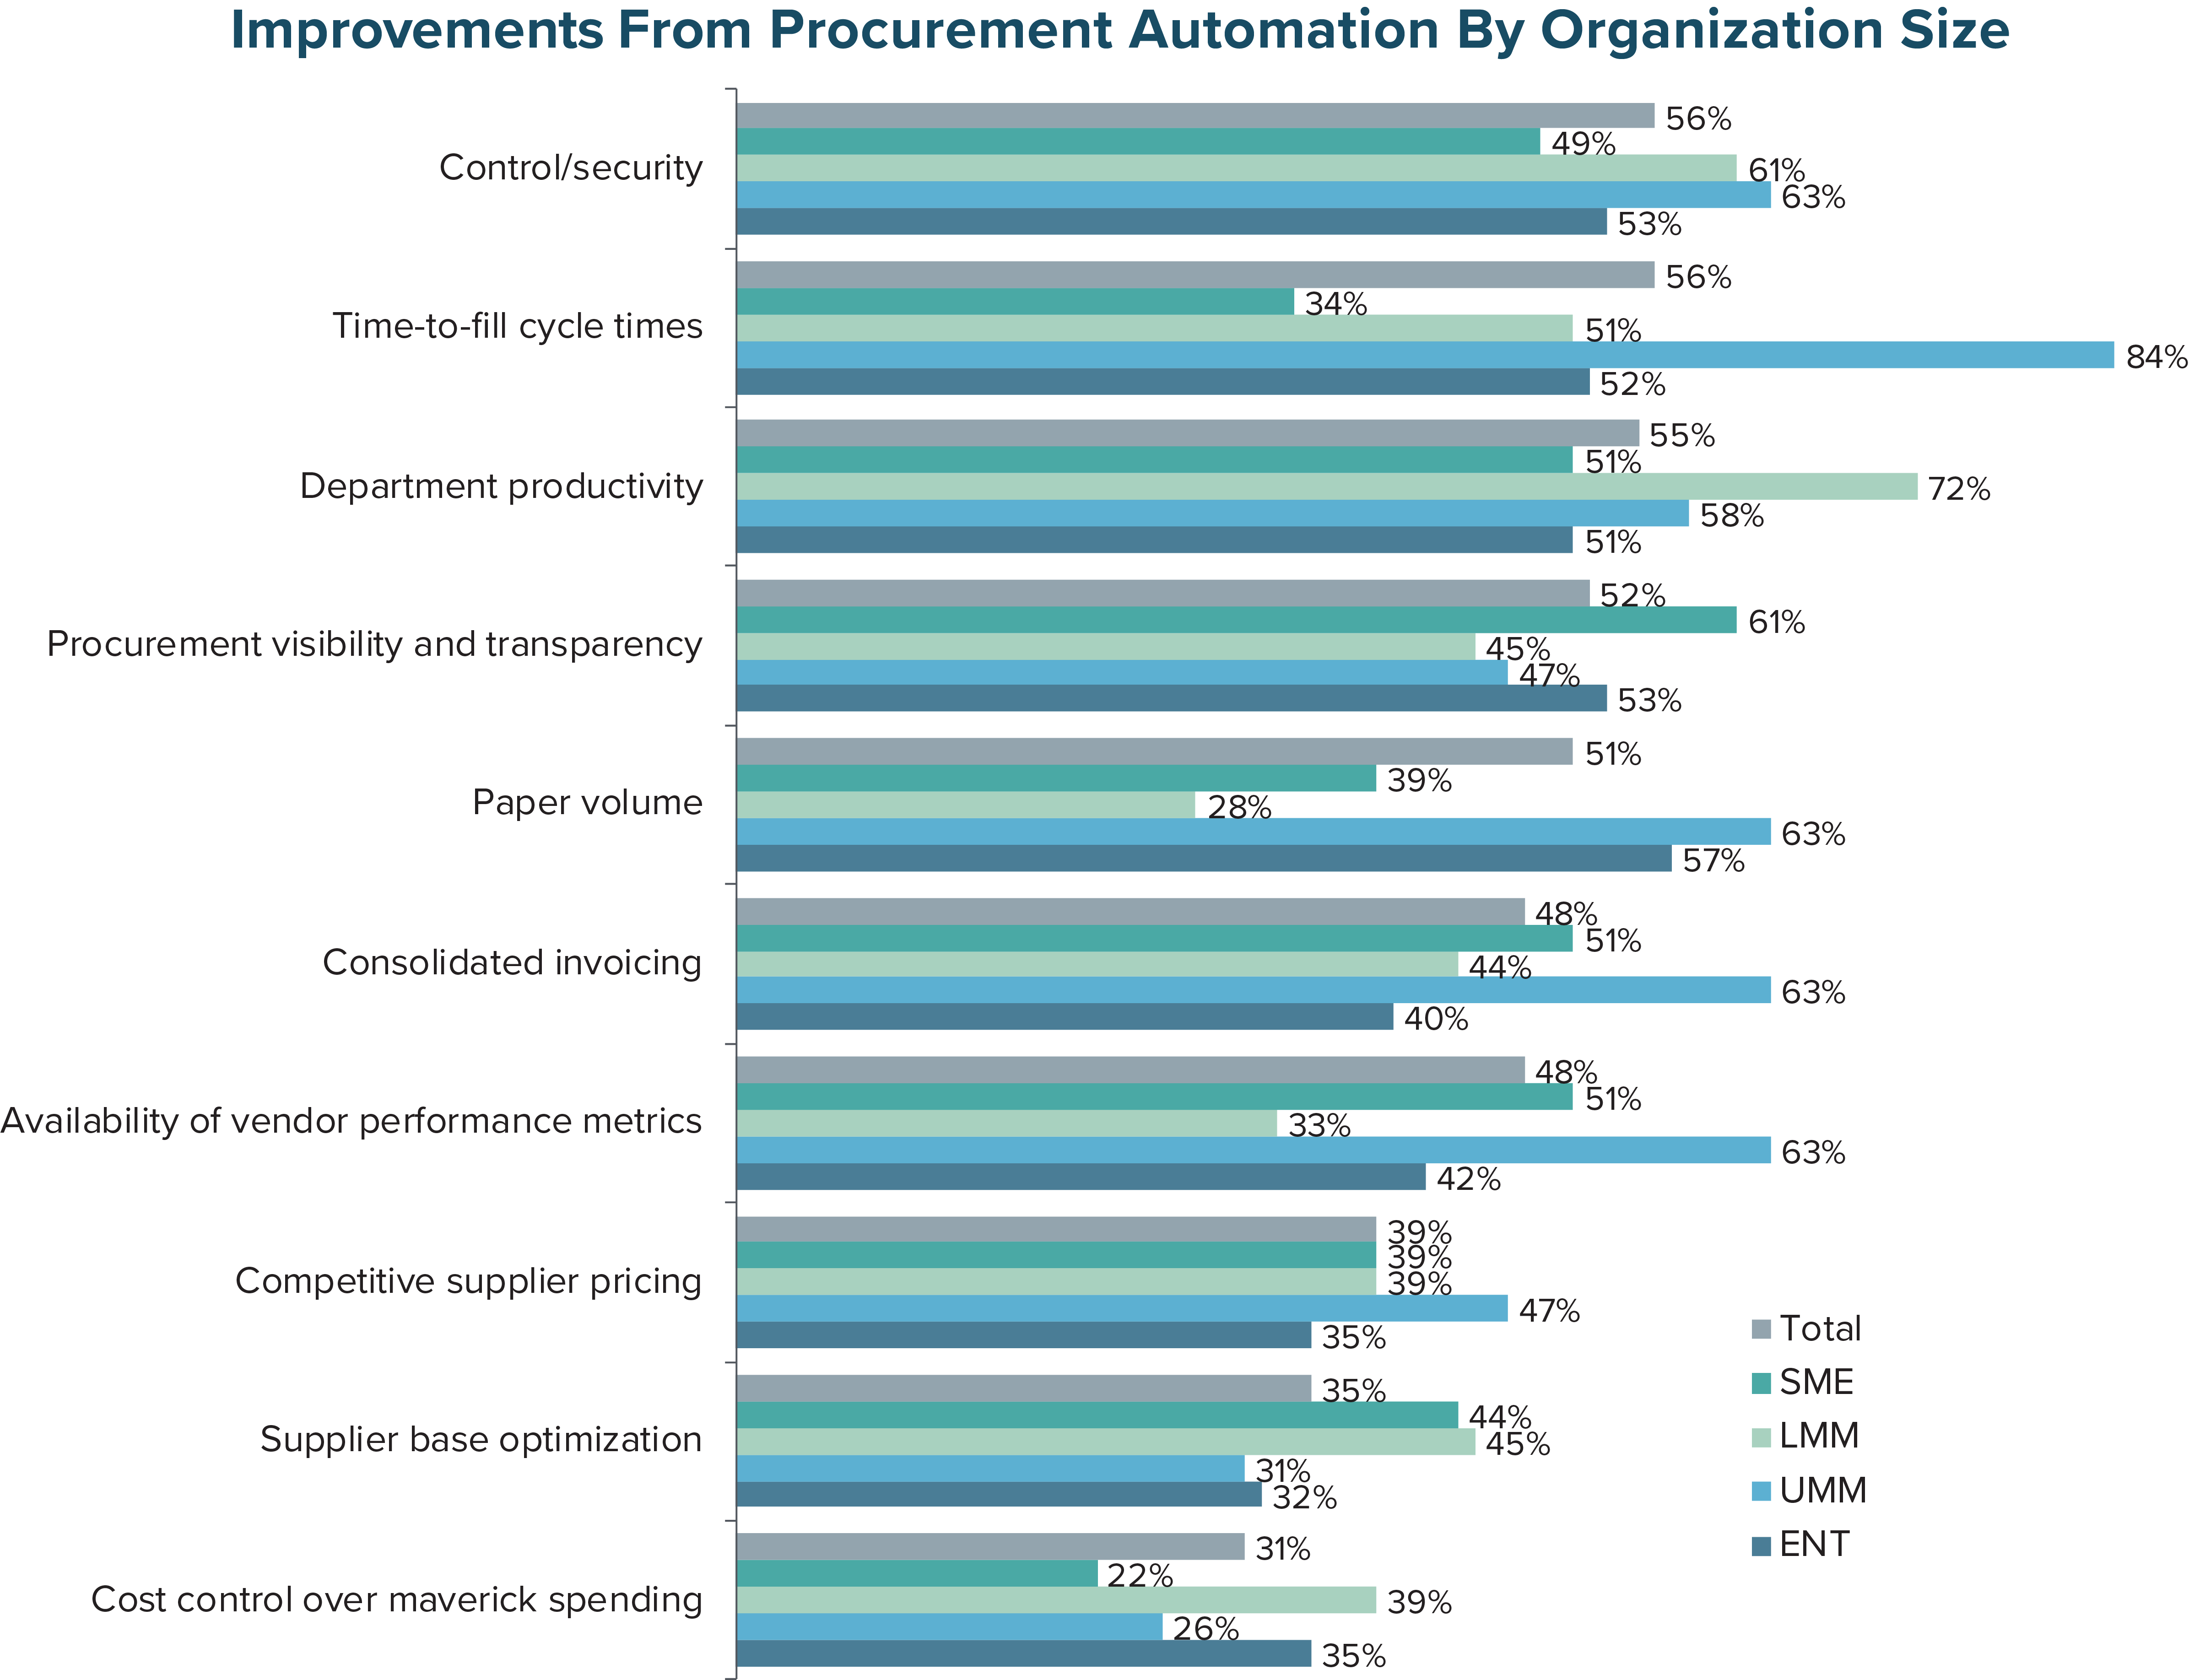 Improvements From Procurement Automation by Organization Size